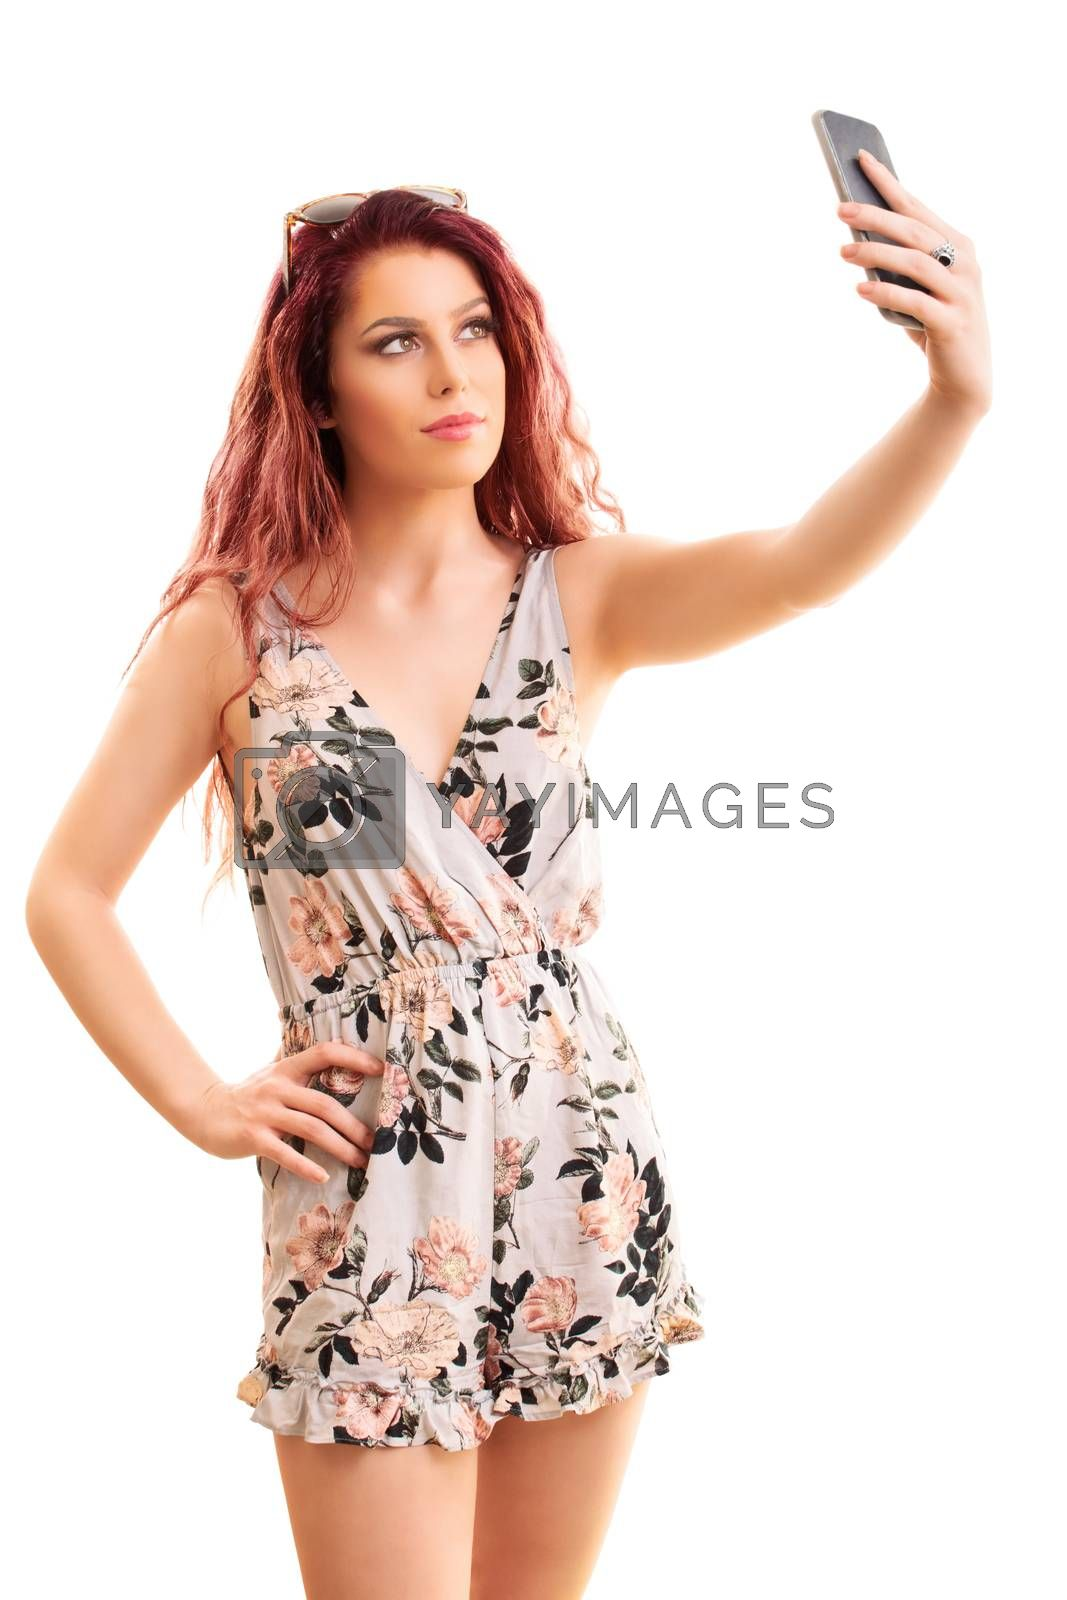 Beautiful smiling fashionable young girl taking a selfie, isolated on a white background.